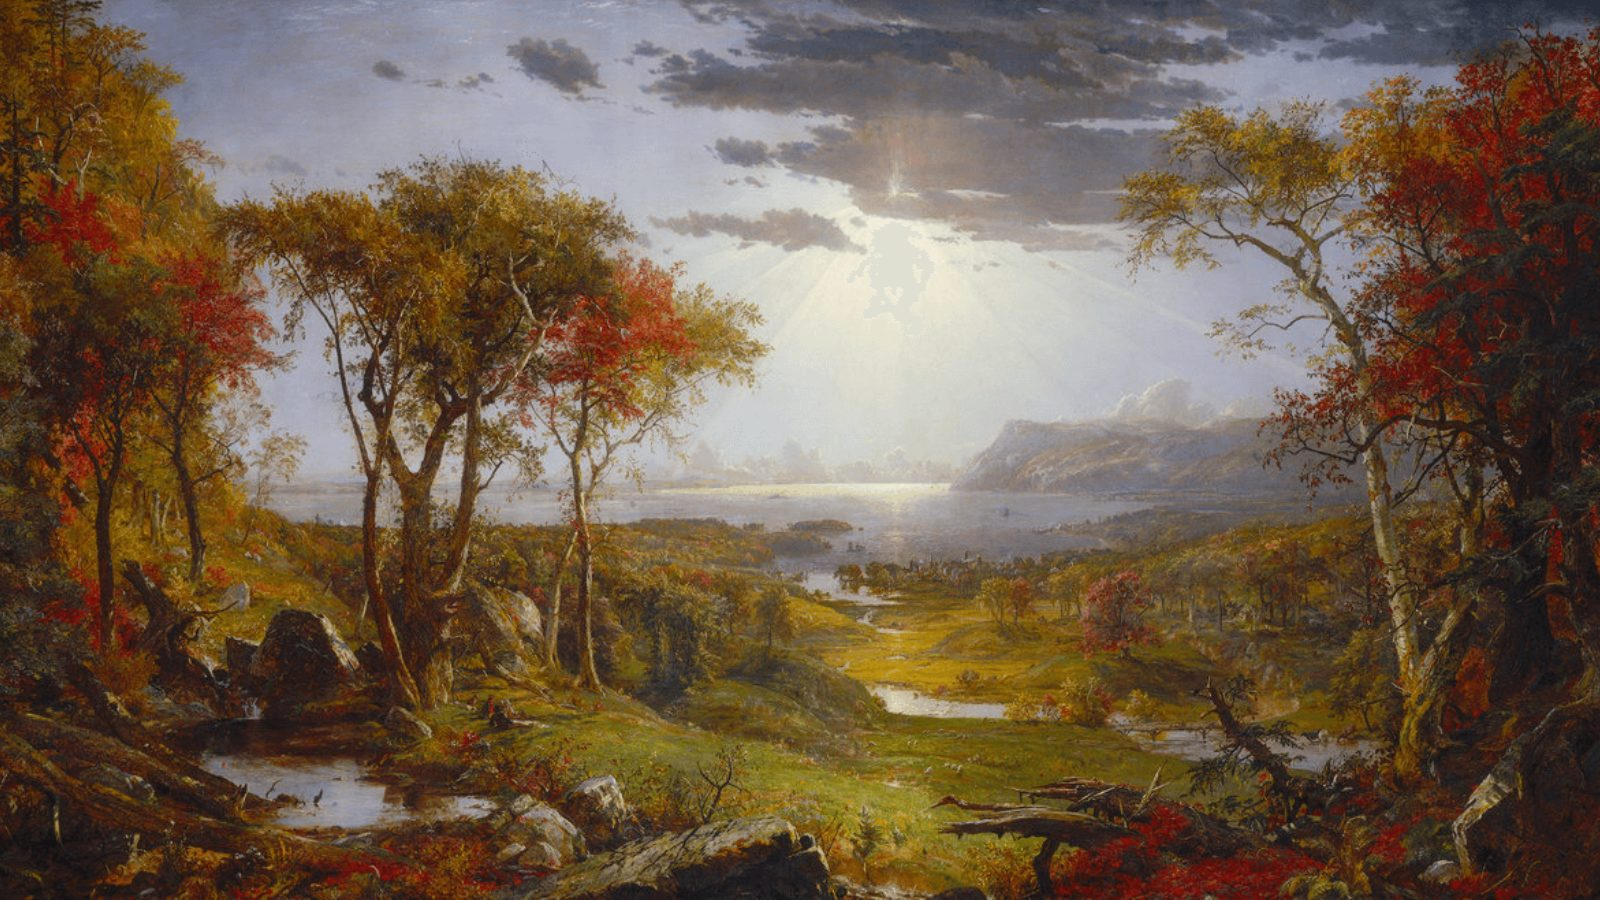 Autumn on the Hudson River by Jasper Cropsey (detail)